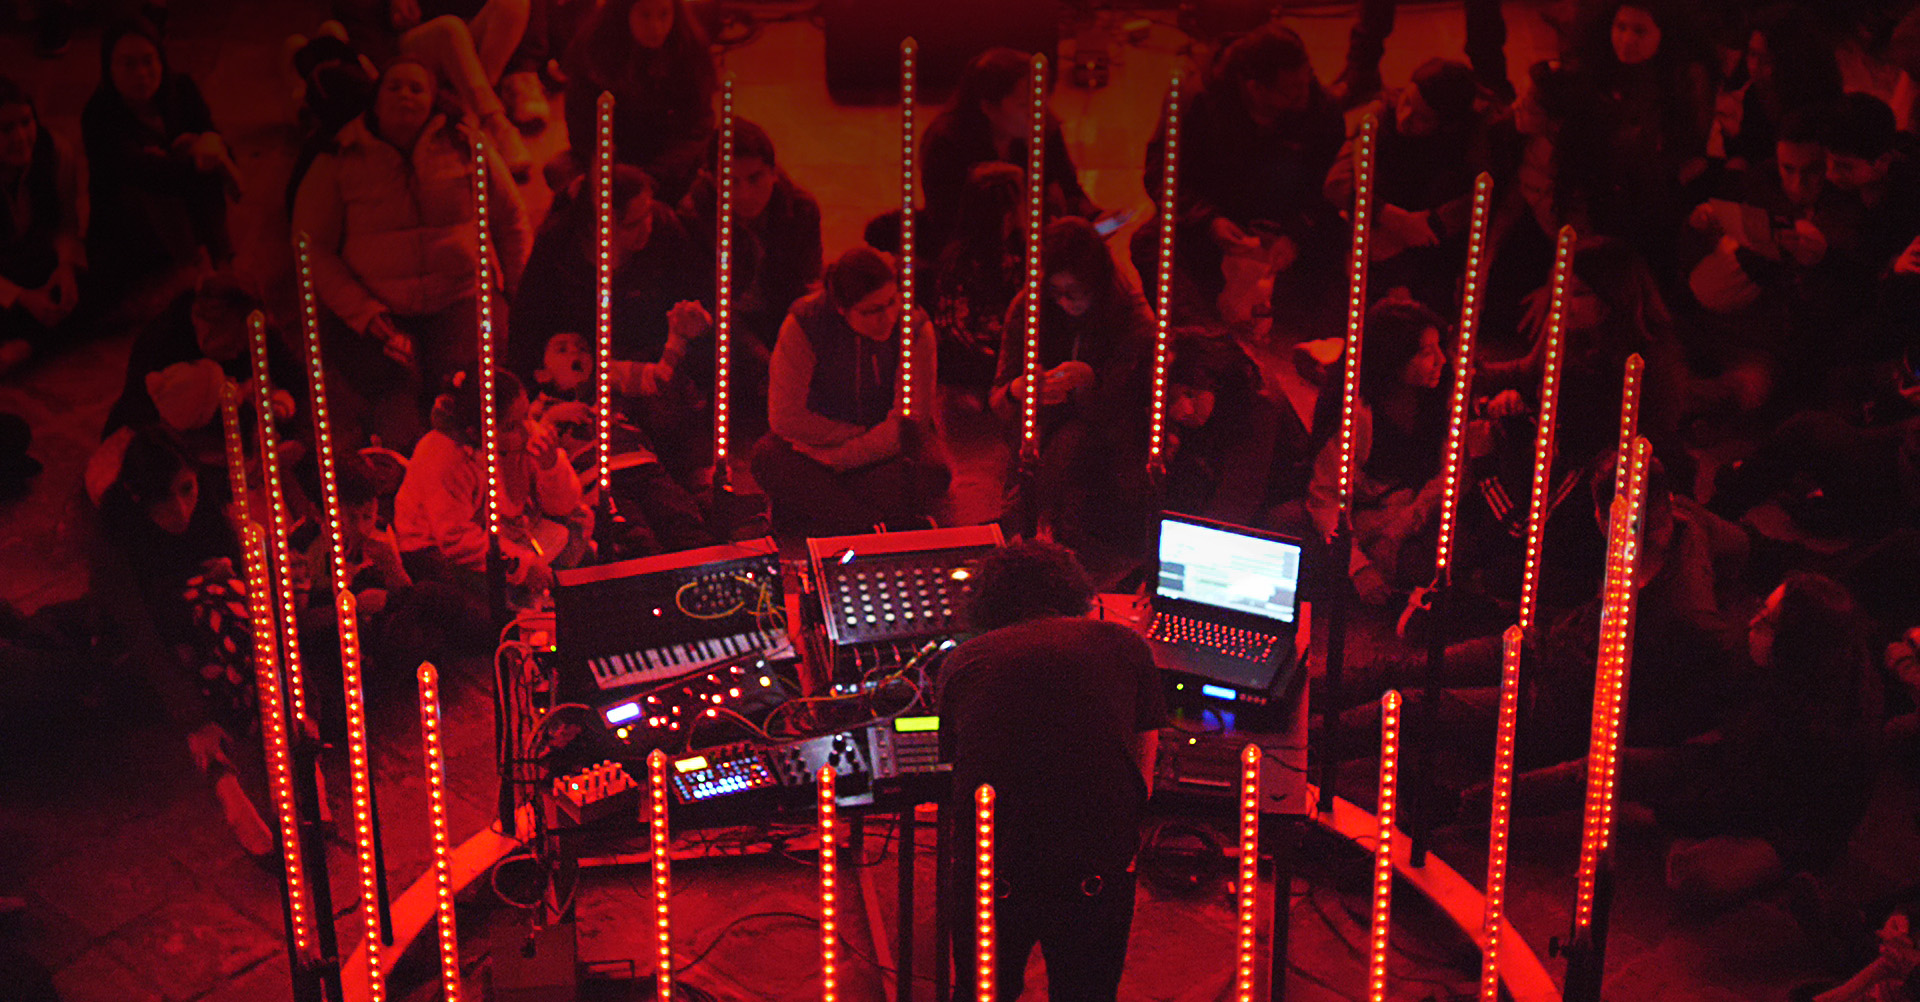 Live at Centro de Arte Contemporáneo de Quito.